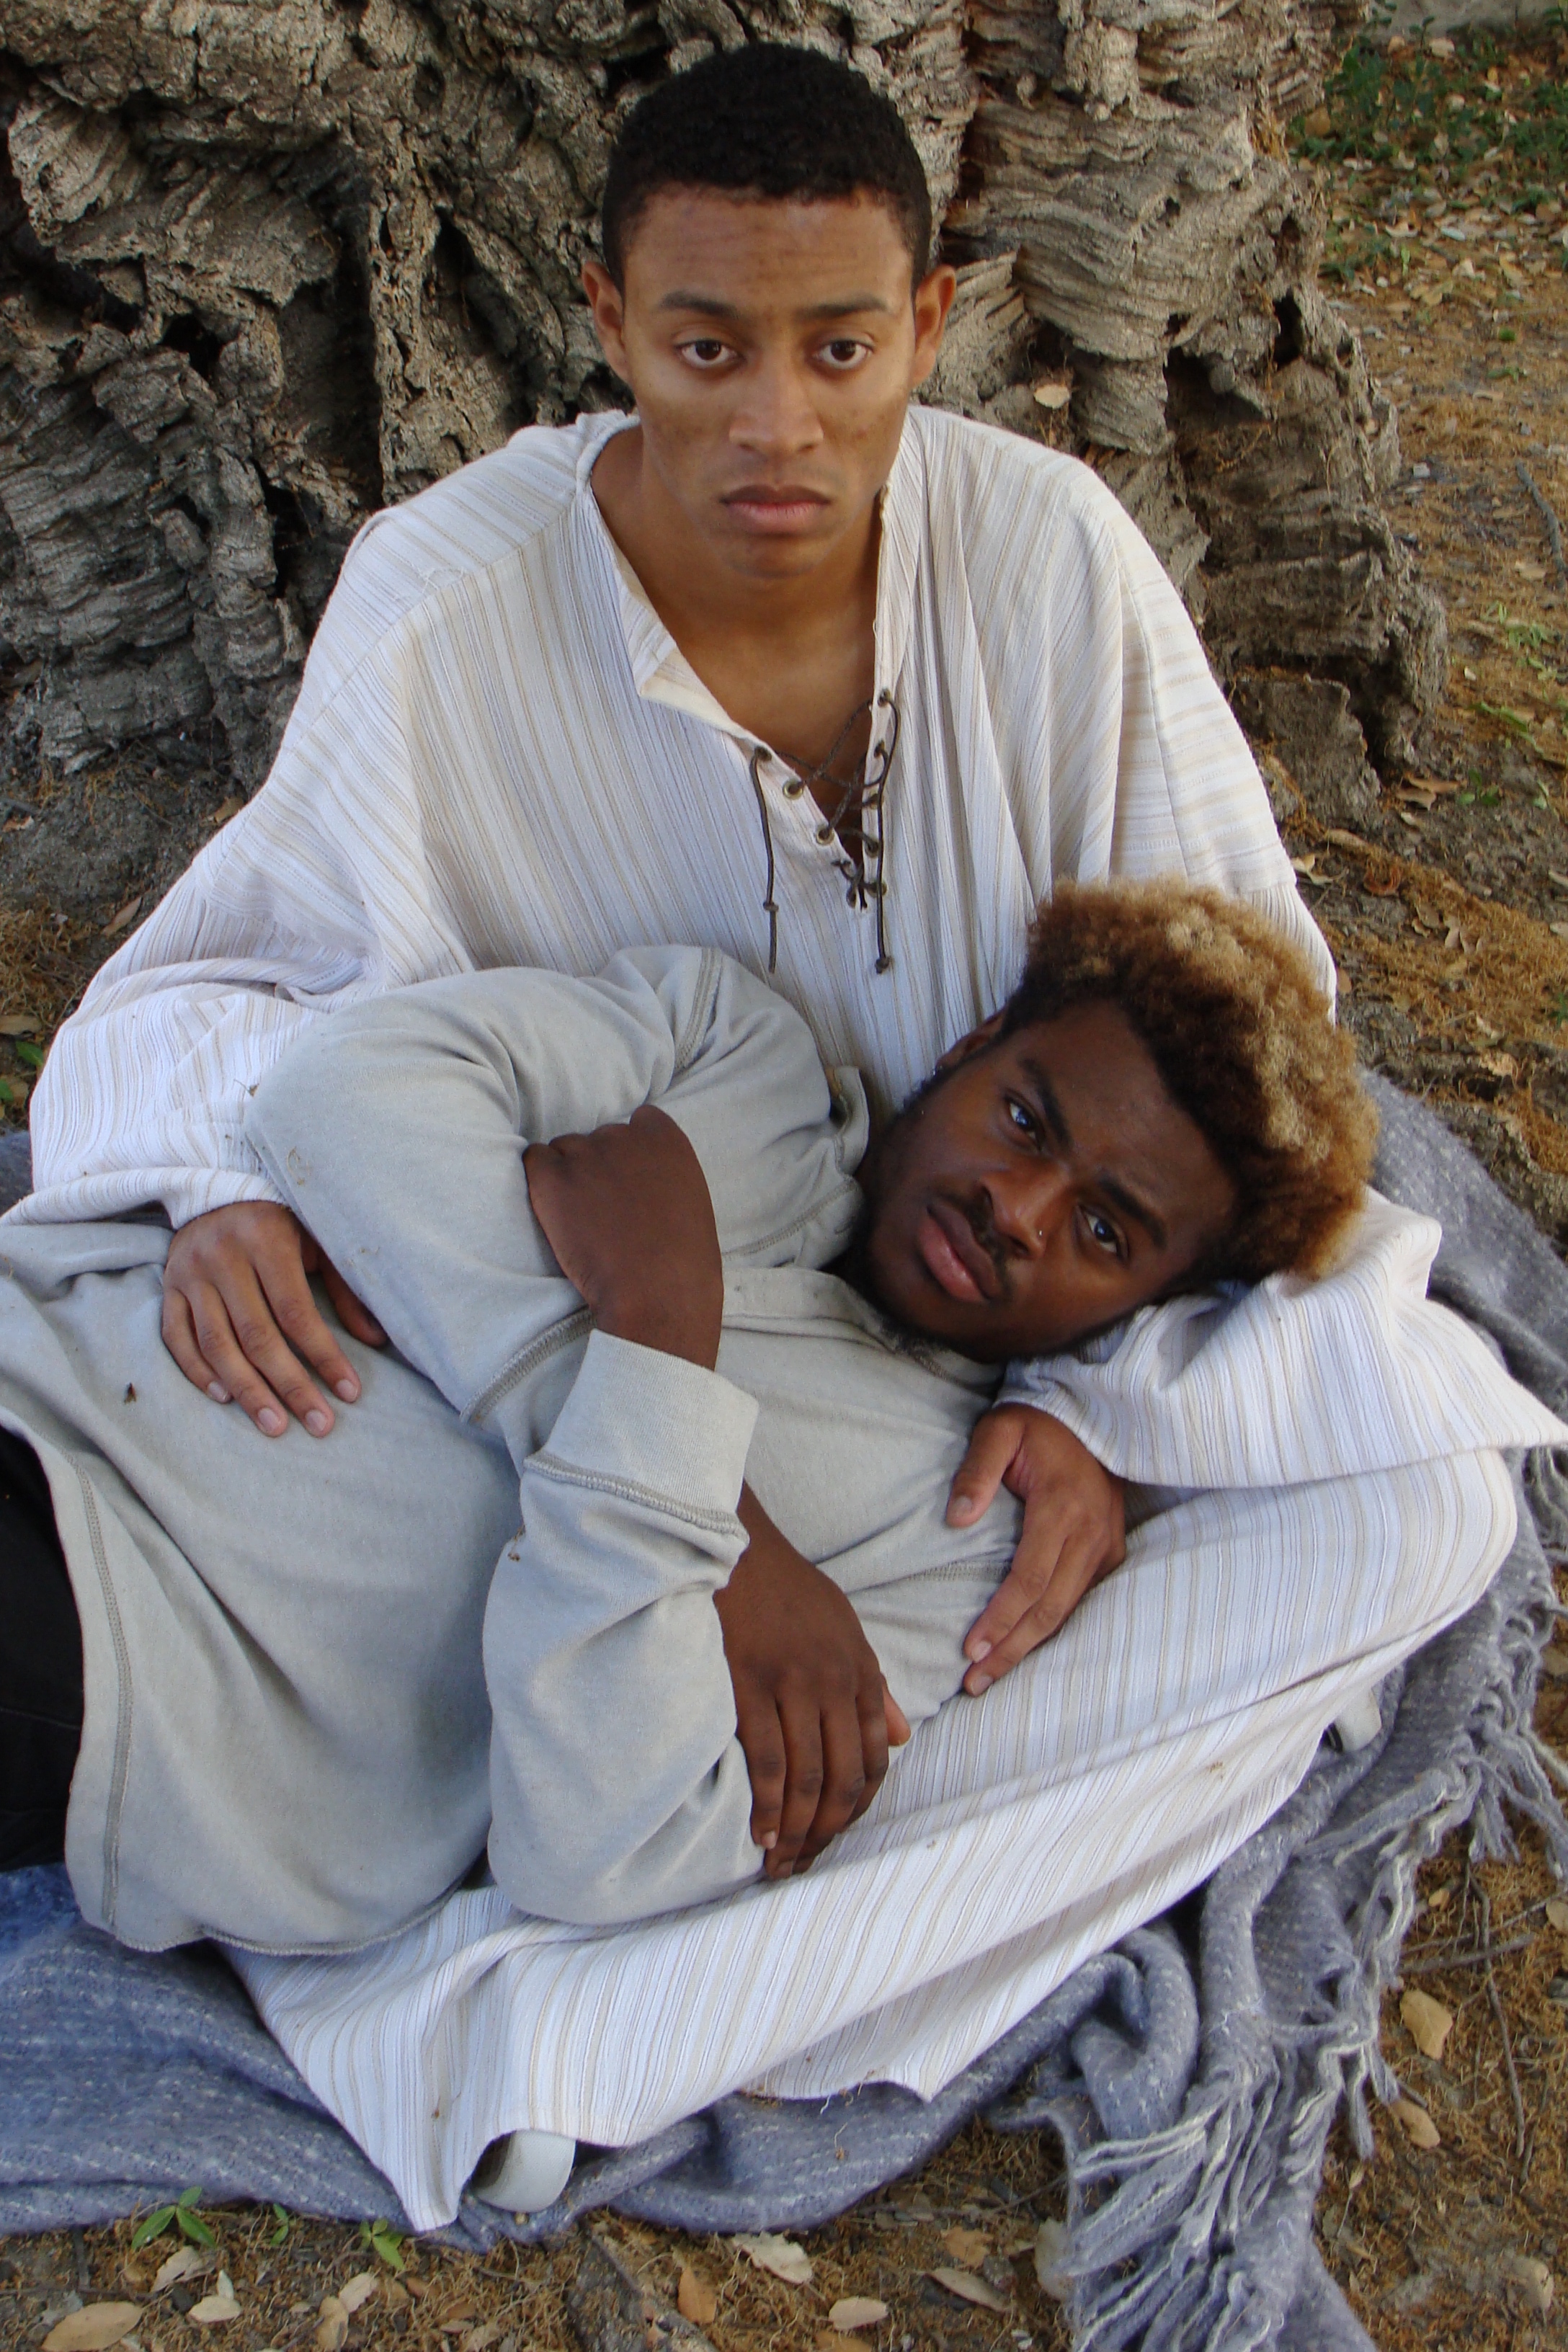 Justin Howard and Angelo Chukwudebe in ...and Jesus Moonwalks the Mississippi, Fall 2017.